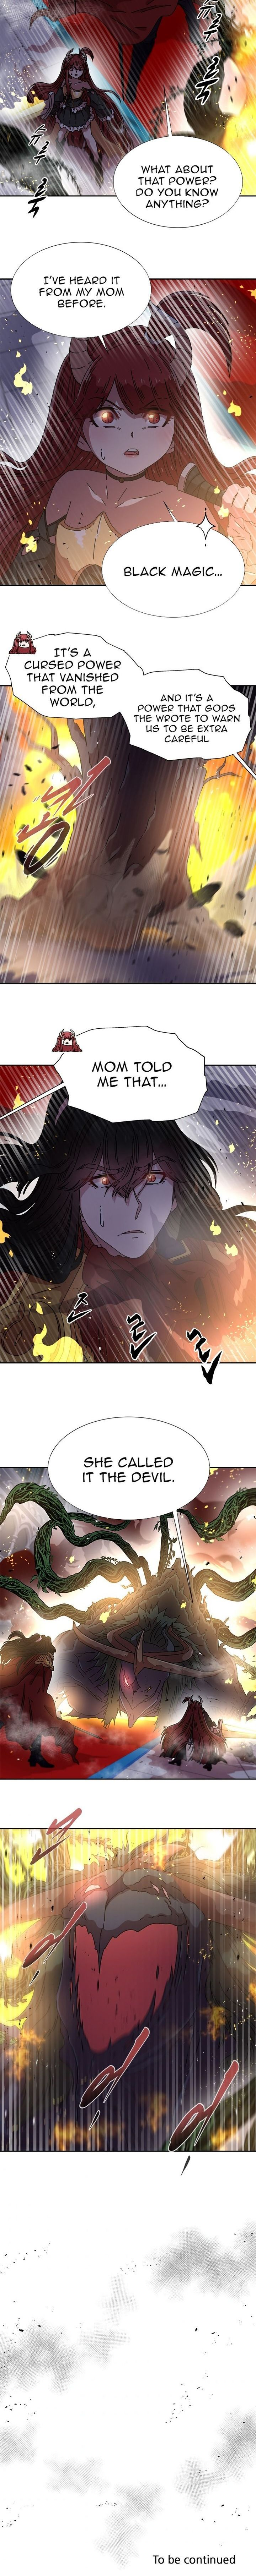 i_was_born_as_the_demon_lords_daughter_51_10